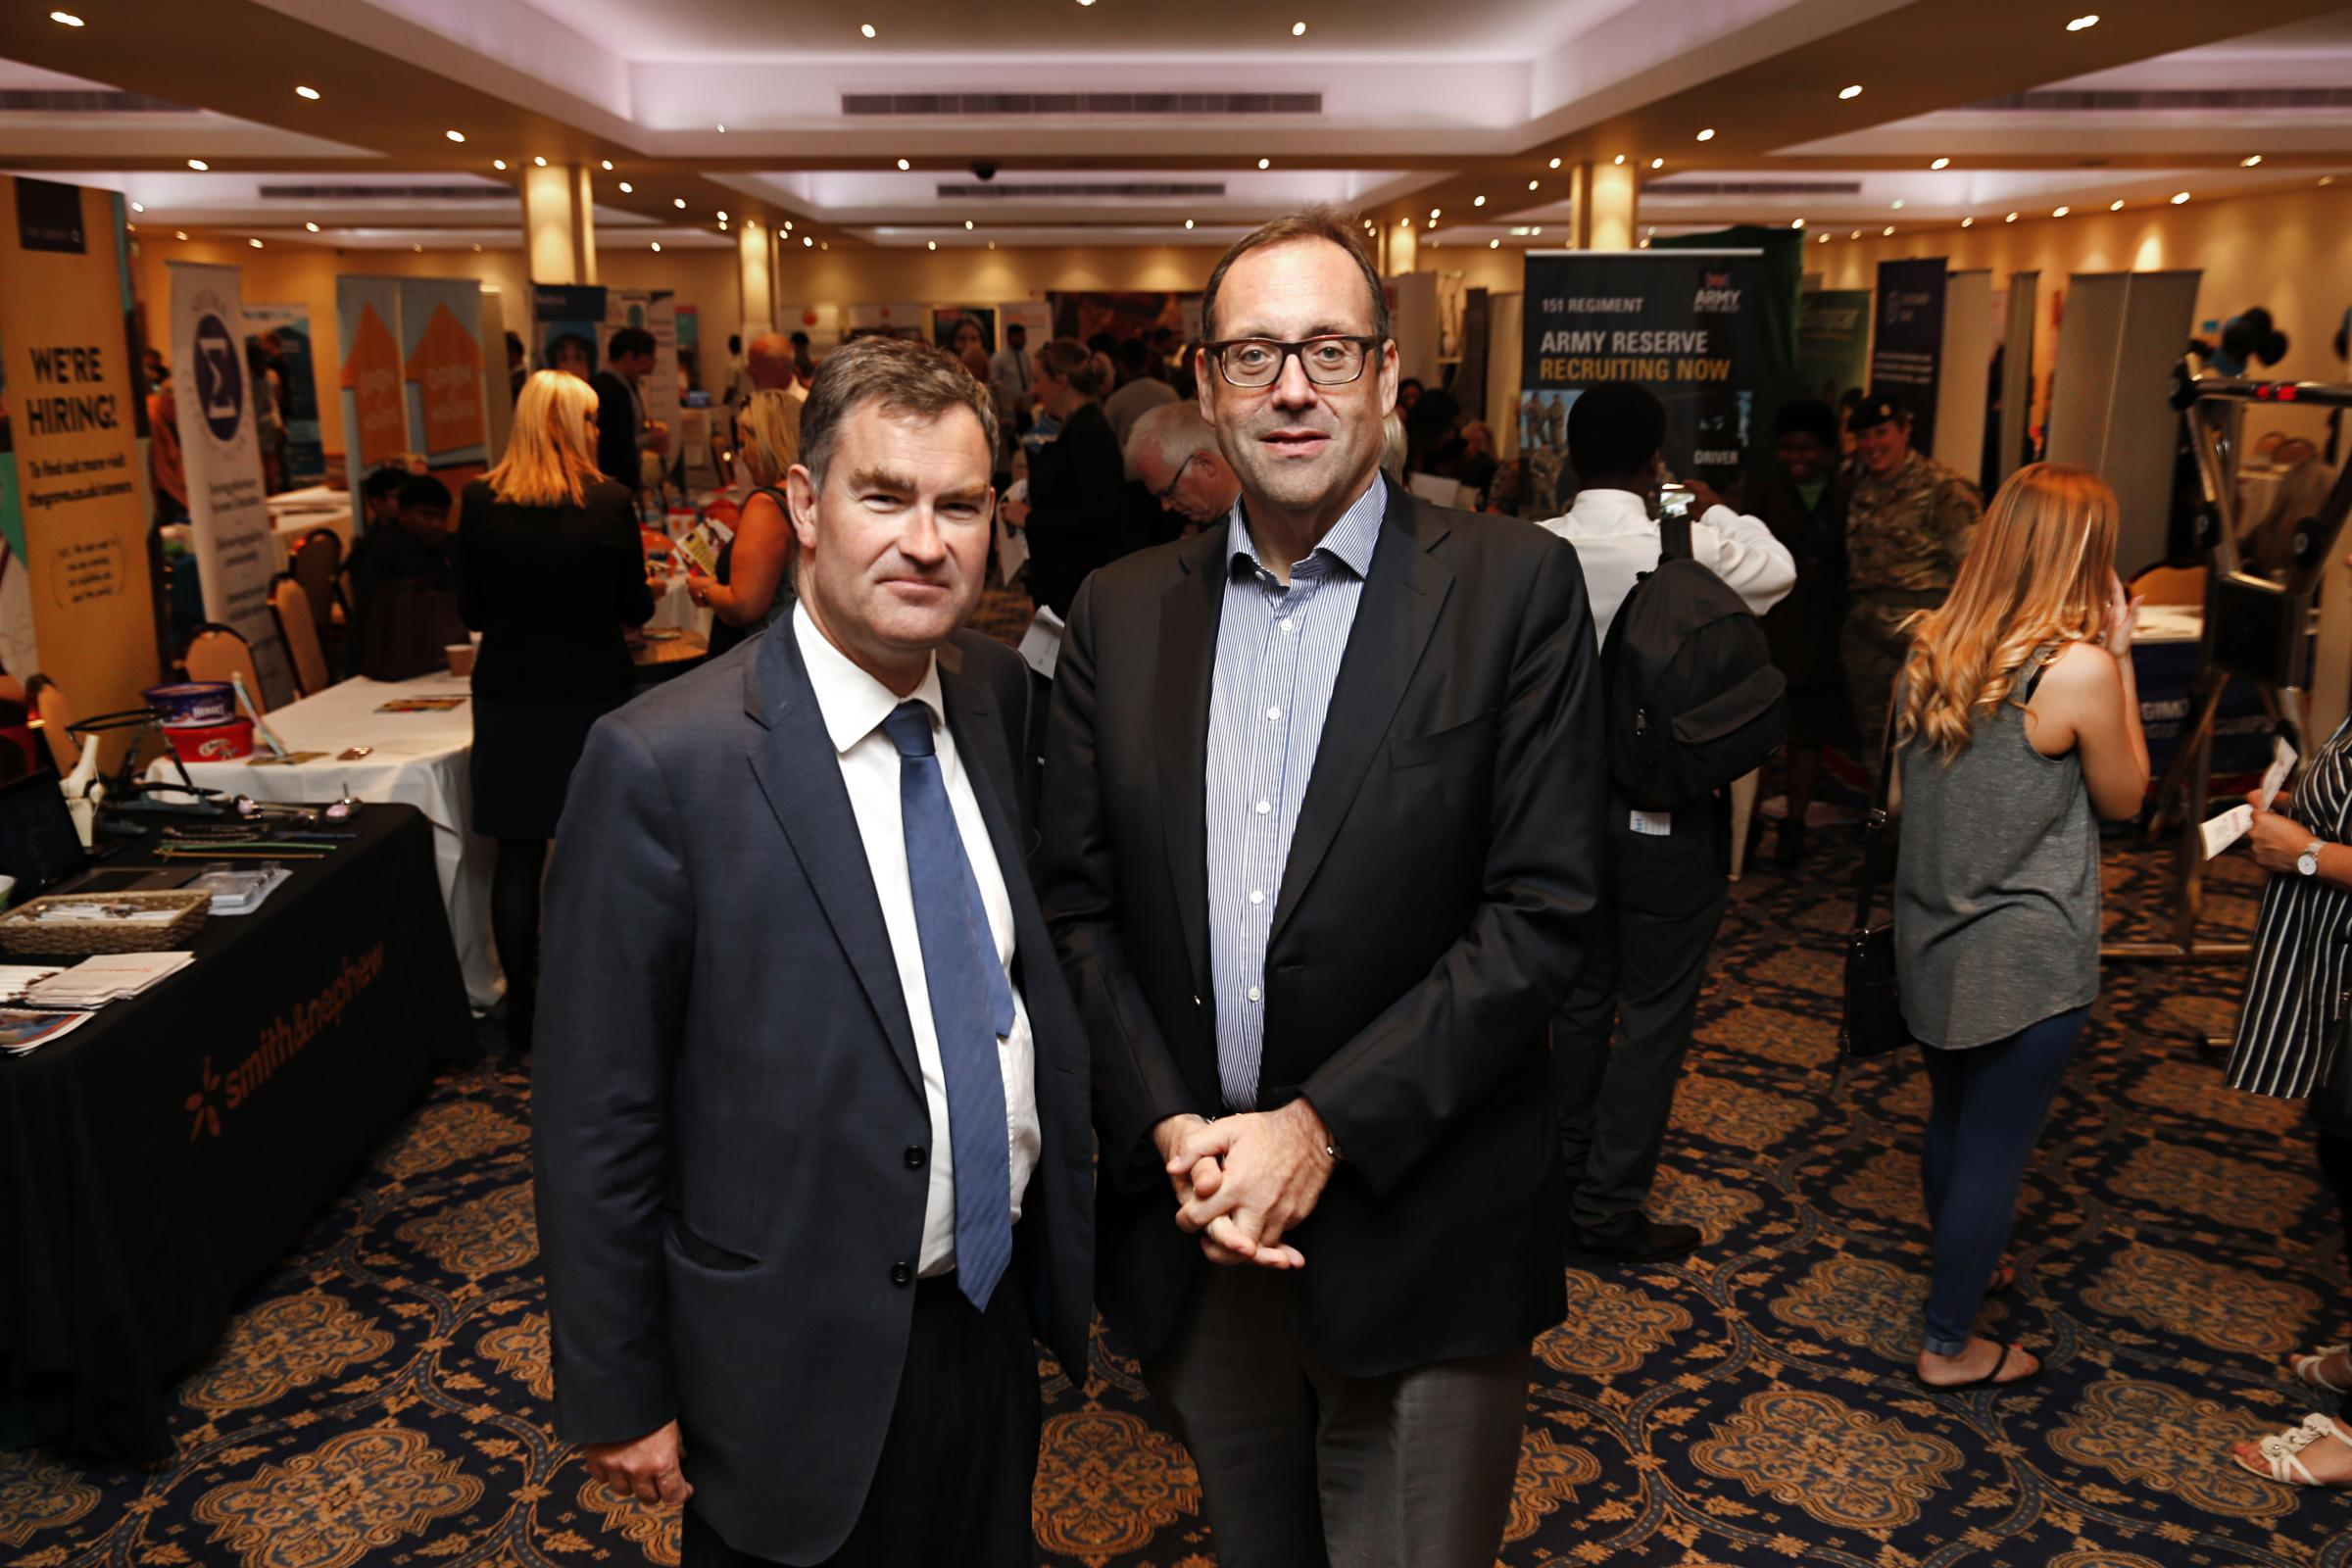 MPs David Gauke and Richard Harrington pictured at one of Mr Harrington's Jobs Fairs